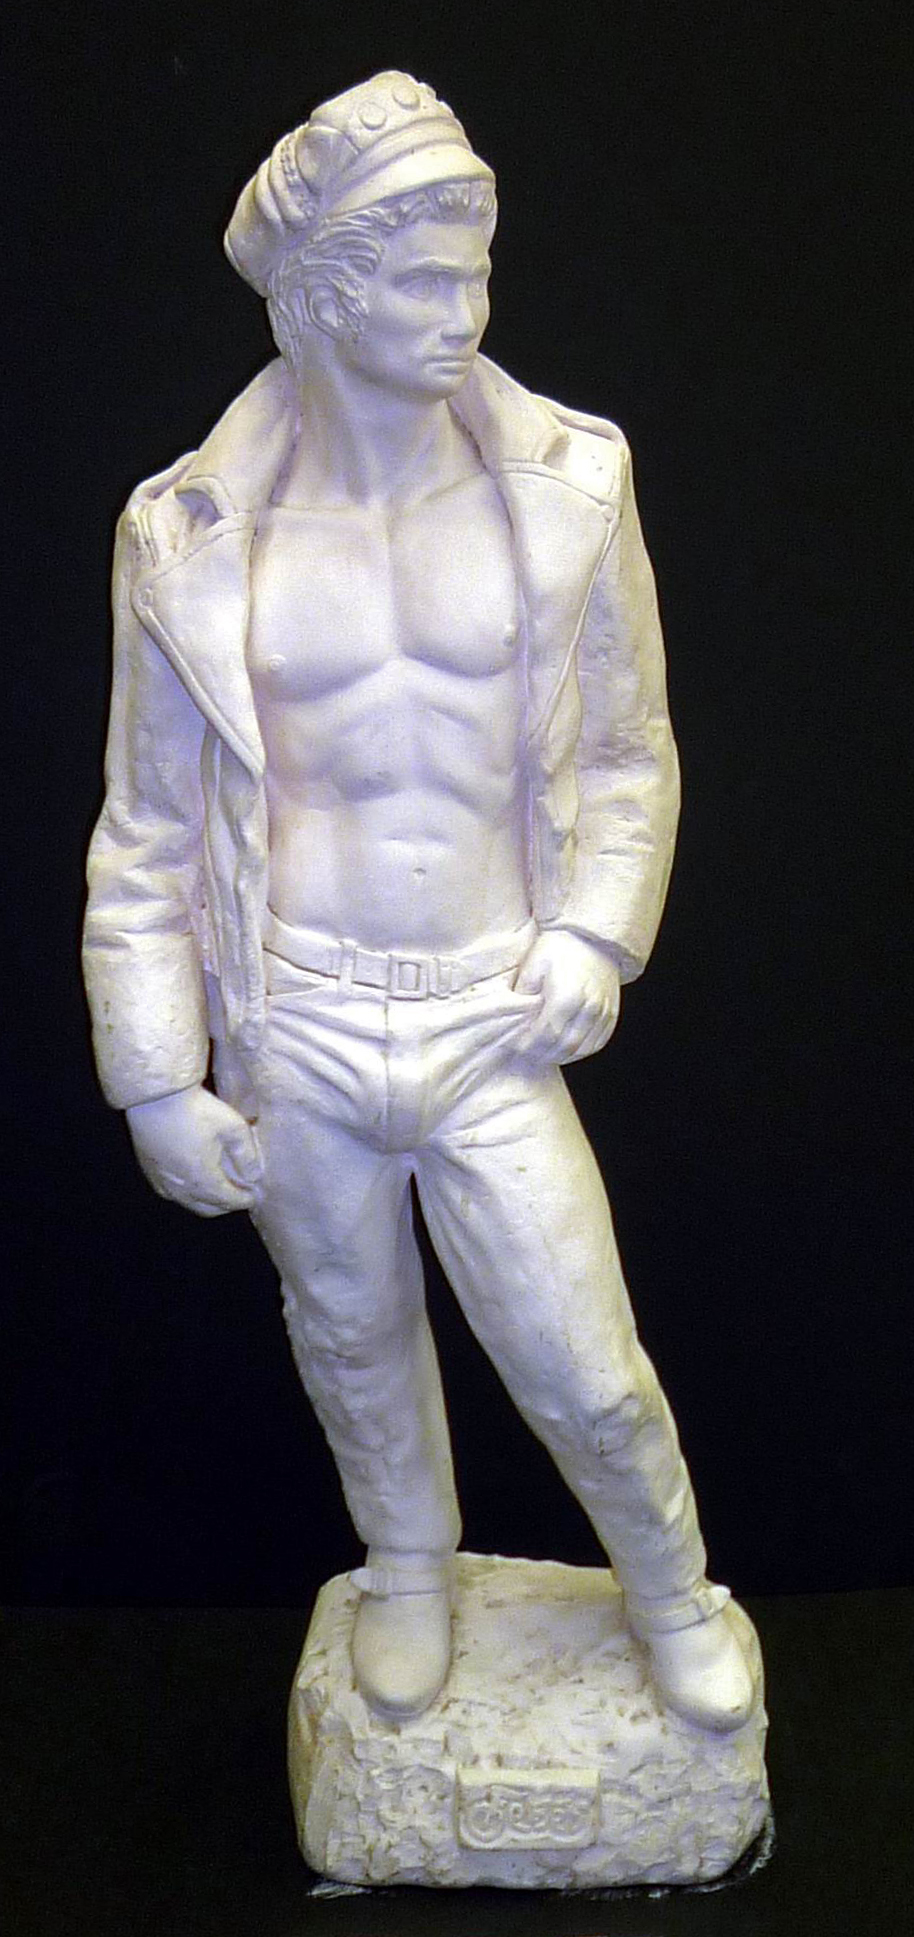 Michael Caffee, Fe-Be's Leather David (1966), cast plaster sculpture with Fe-Be's plaque on base, GLBT Historical Society.